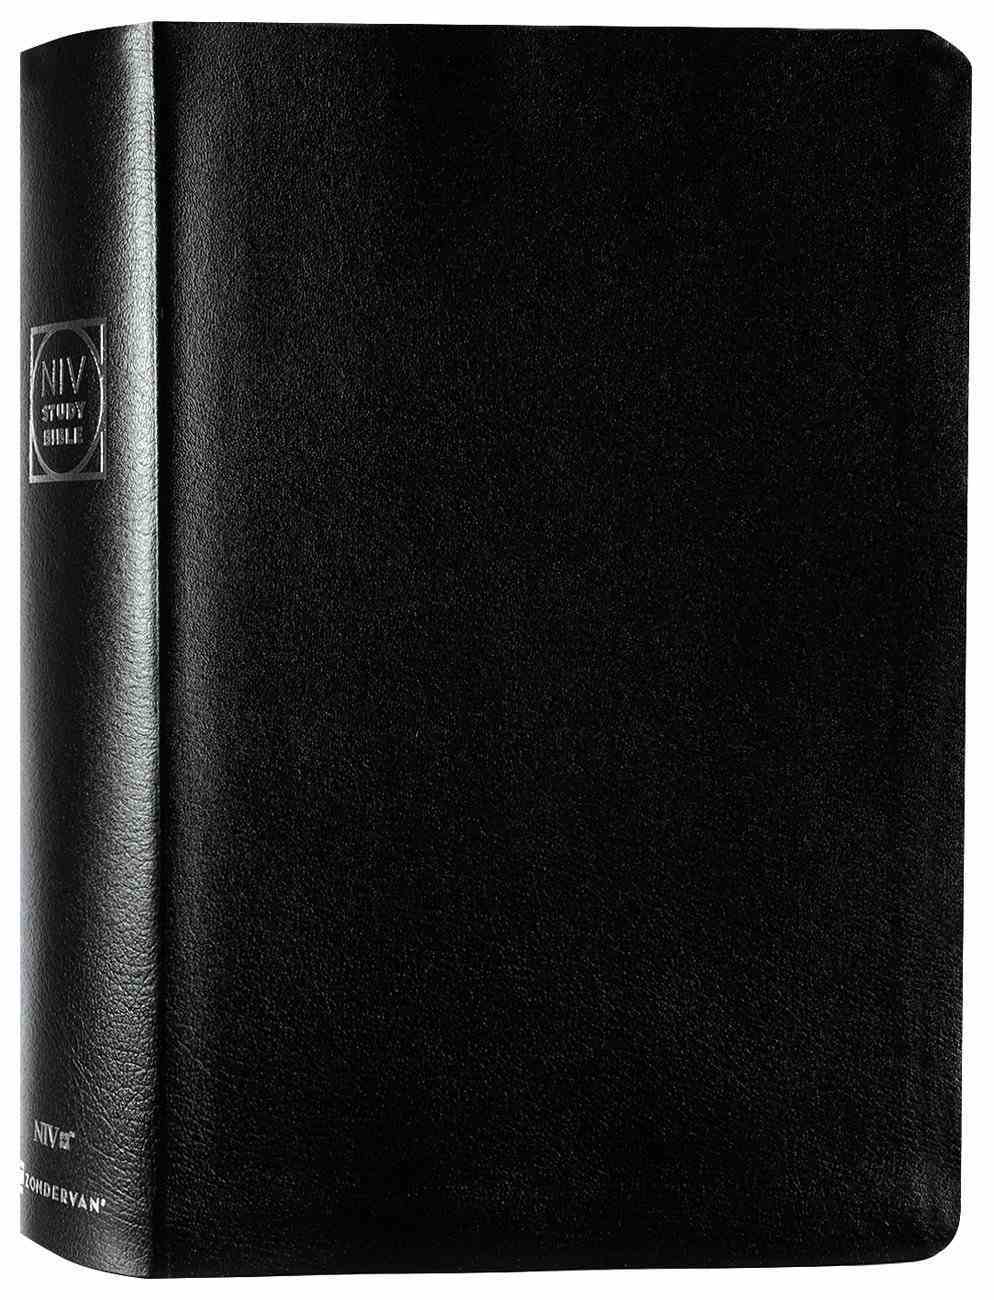 NIV Study Bible Black (Red Letter Edition) Fully Revised Edition (2020) Bonded Leather